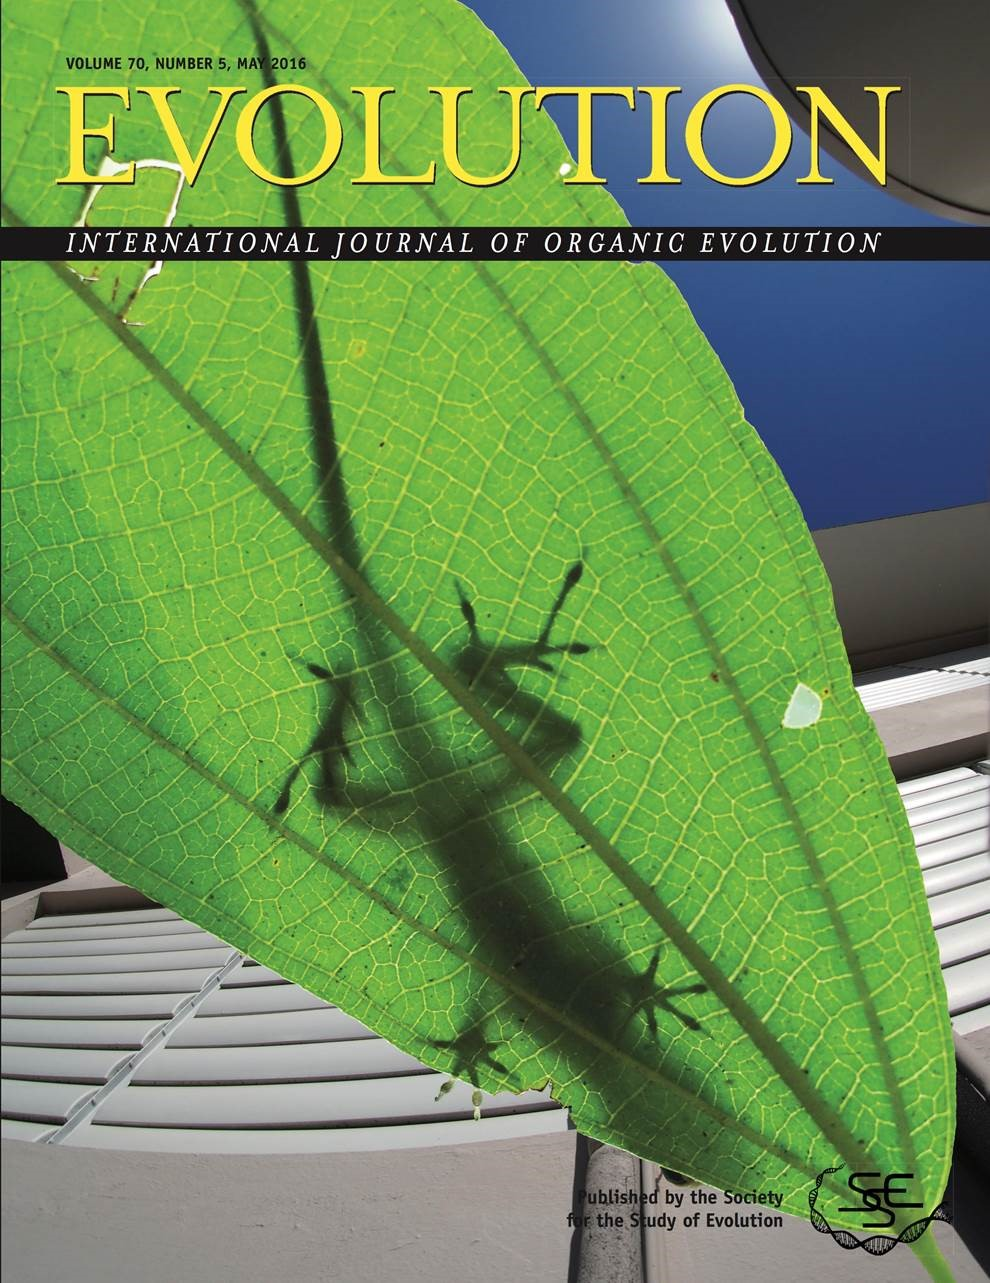 Evolution International Journal Organic Evolution.